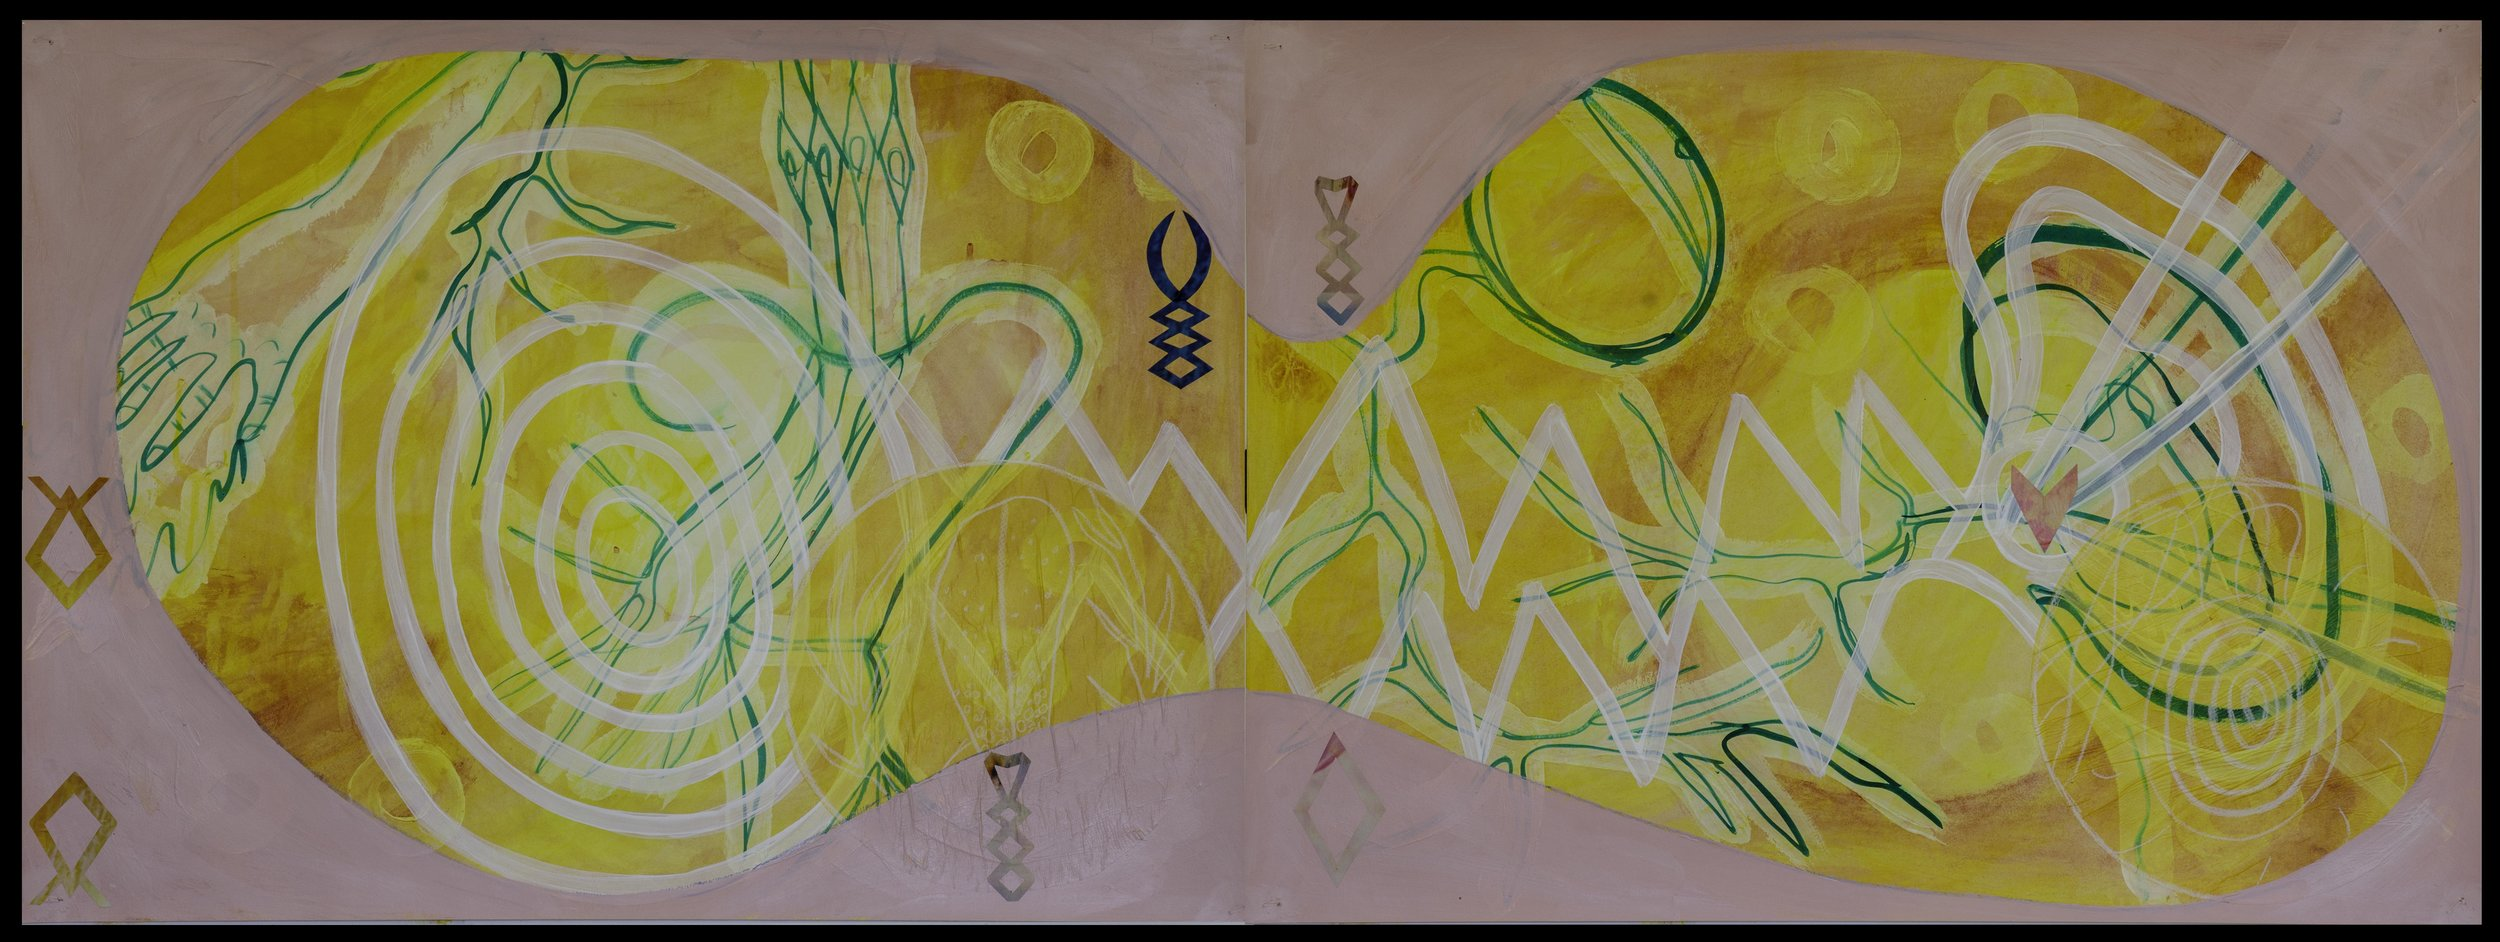 Can You Hear My Vibration (Diptych)